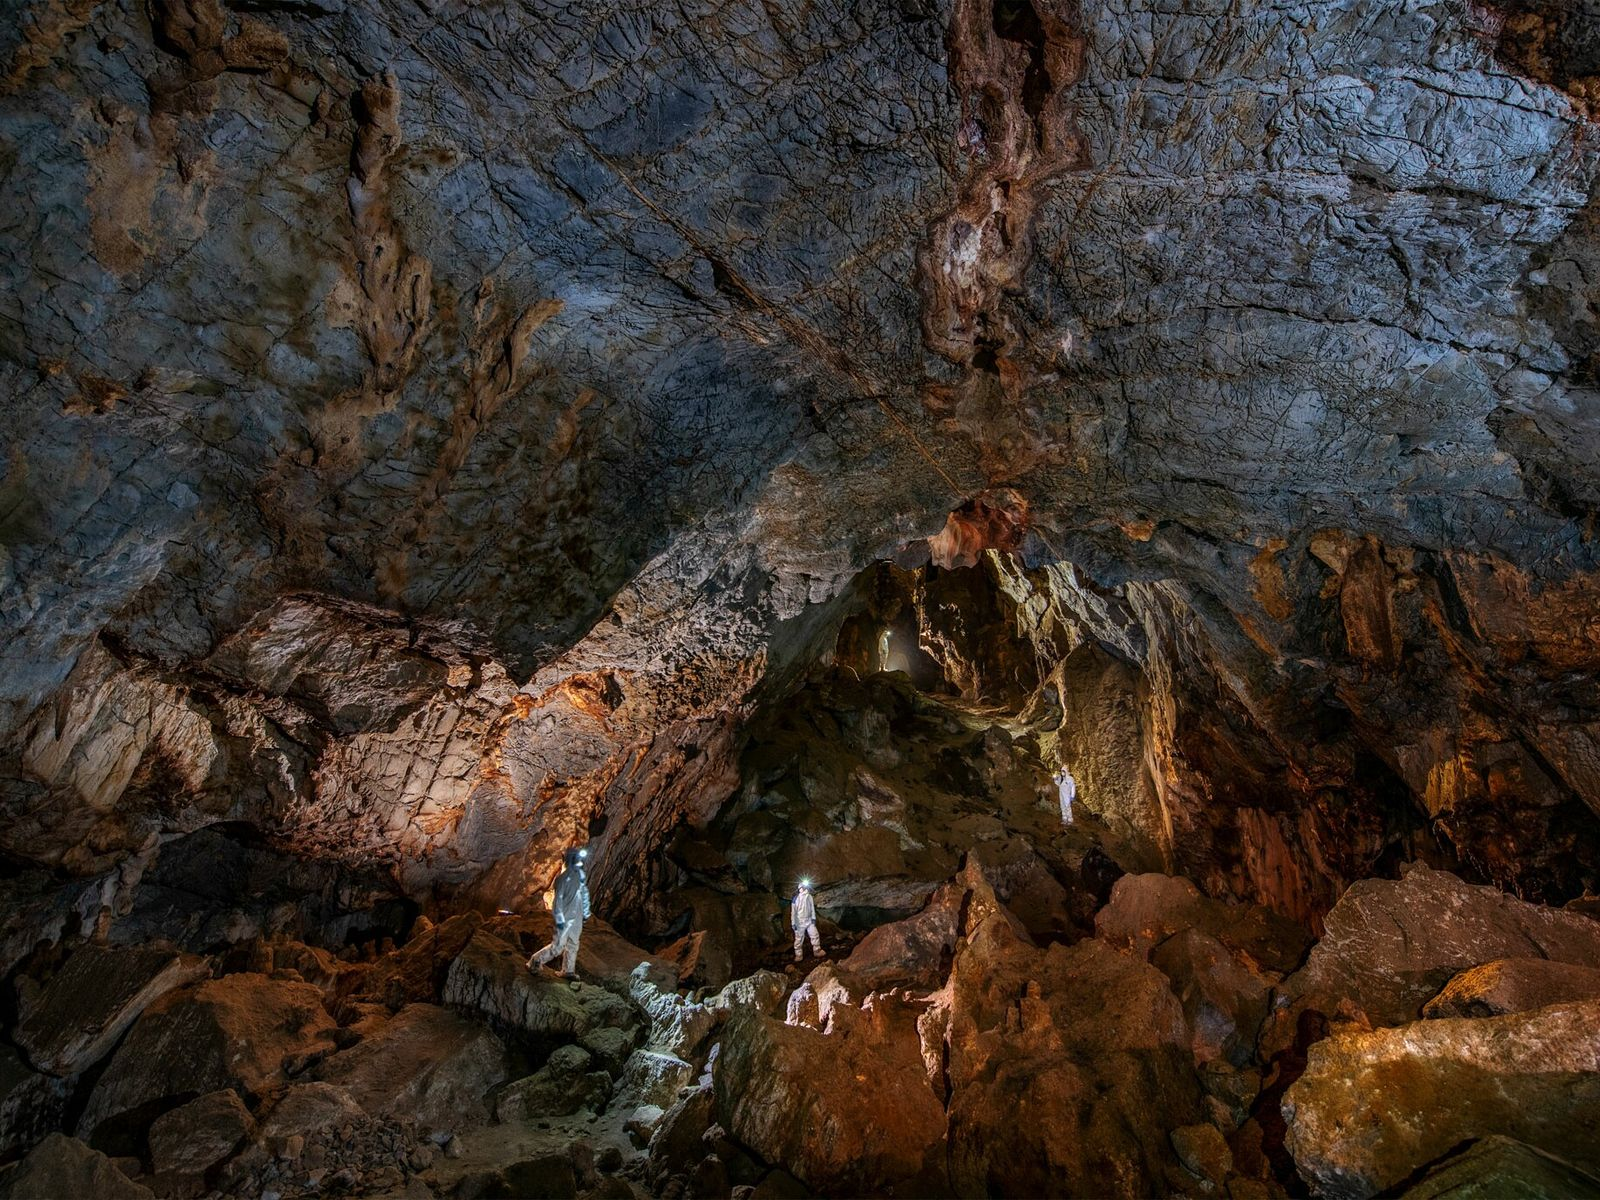 Researchers in Chiquihuite Cave wear protective gear to prevent contamination of excavation areas where they are ...